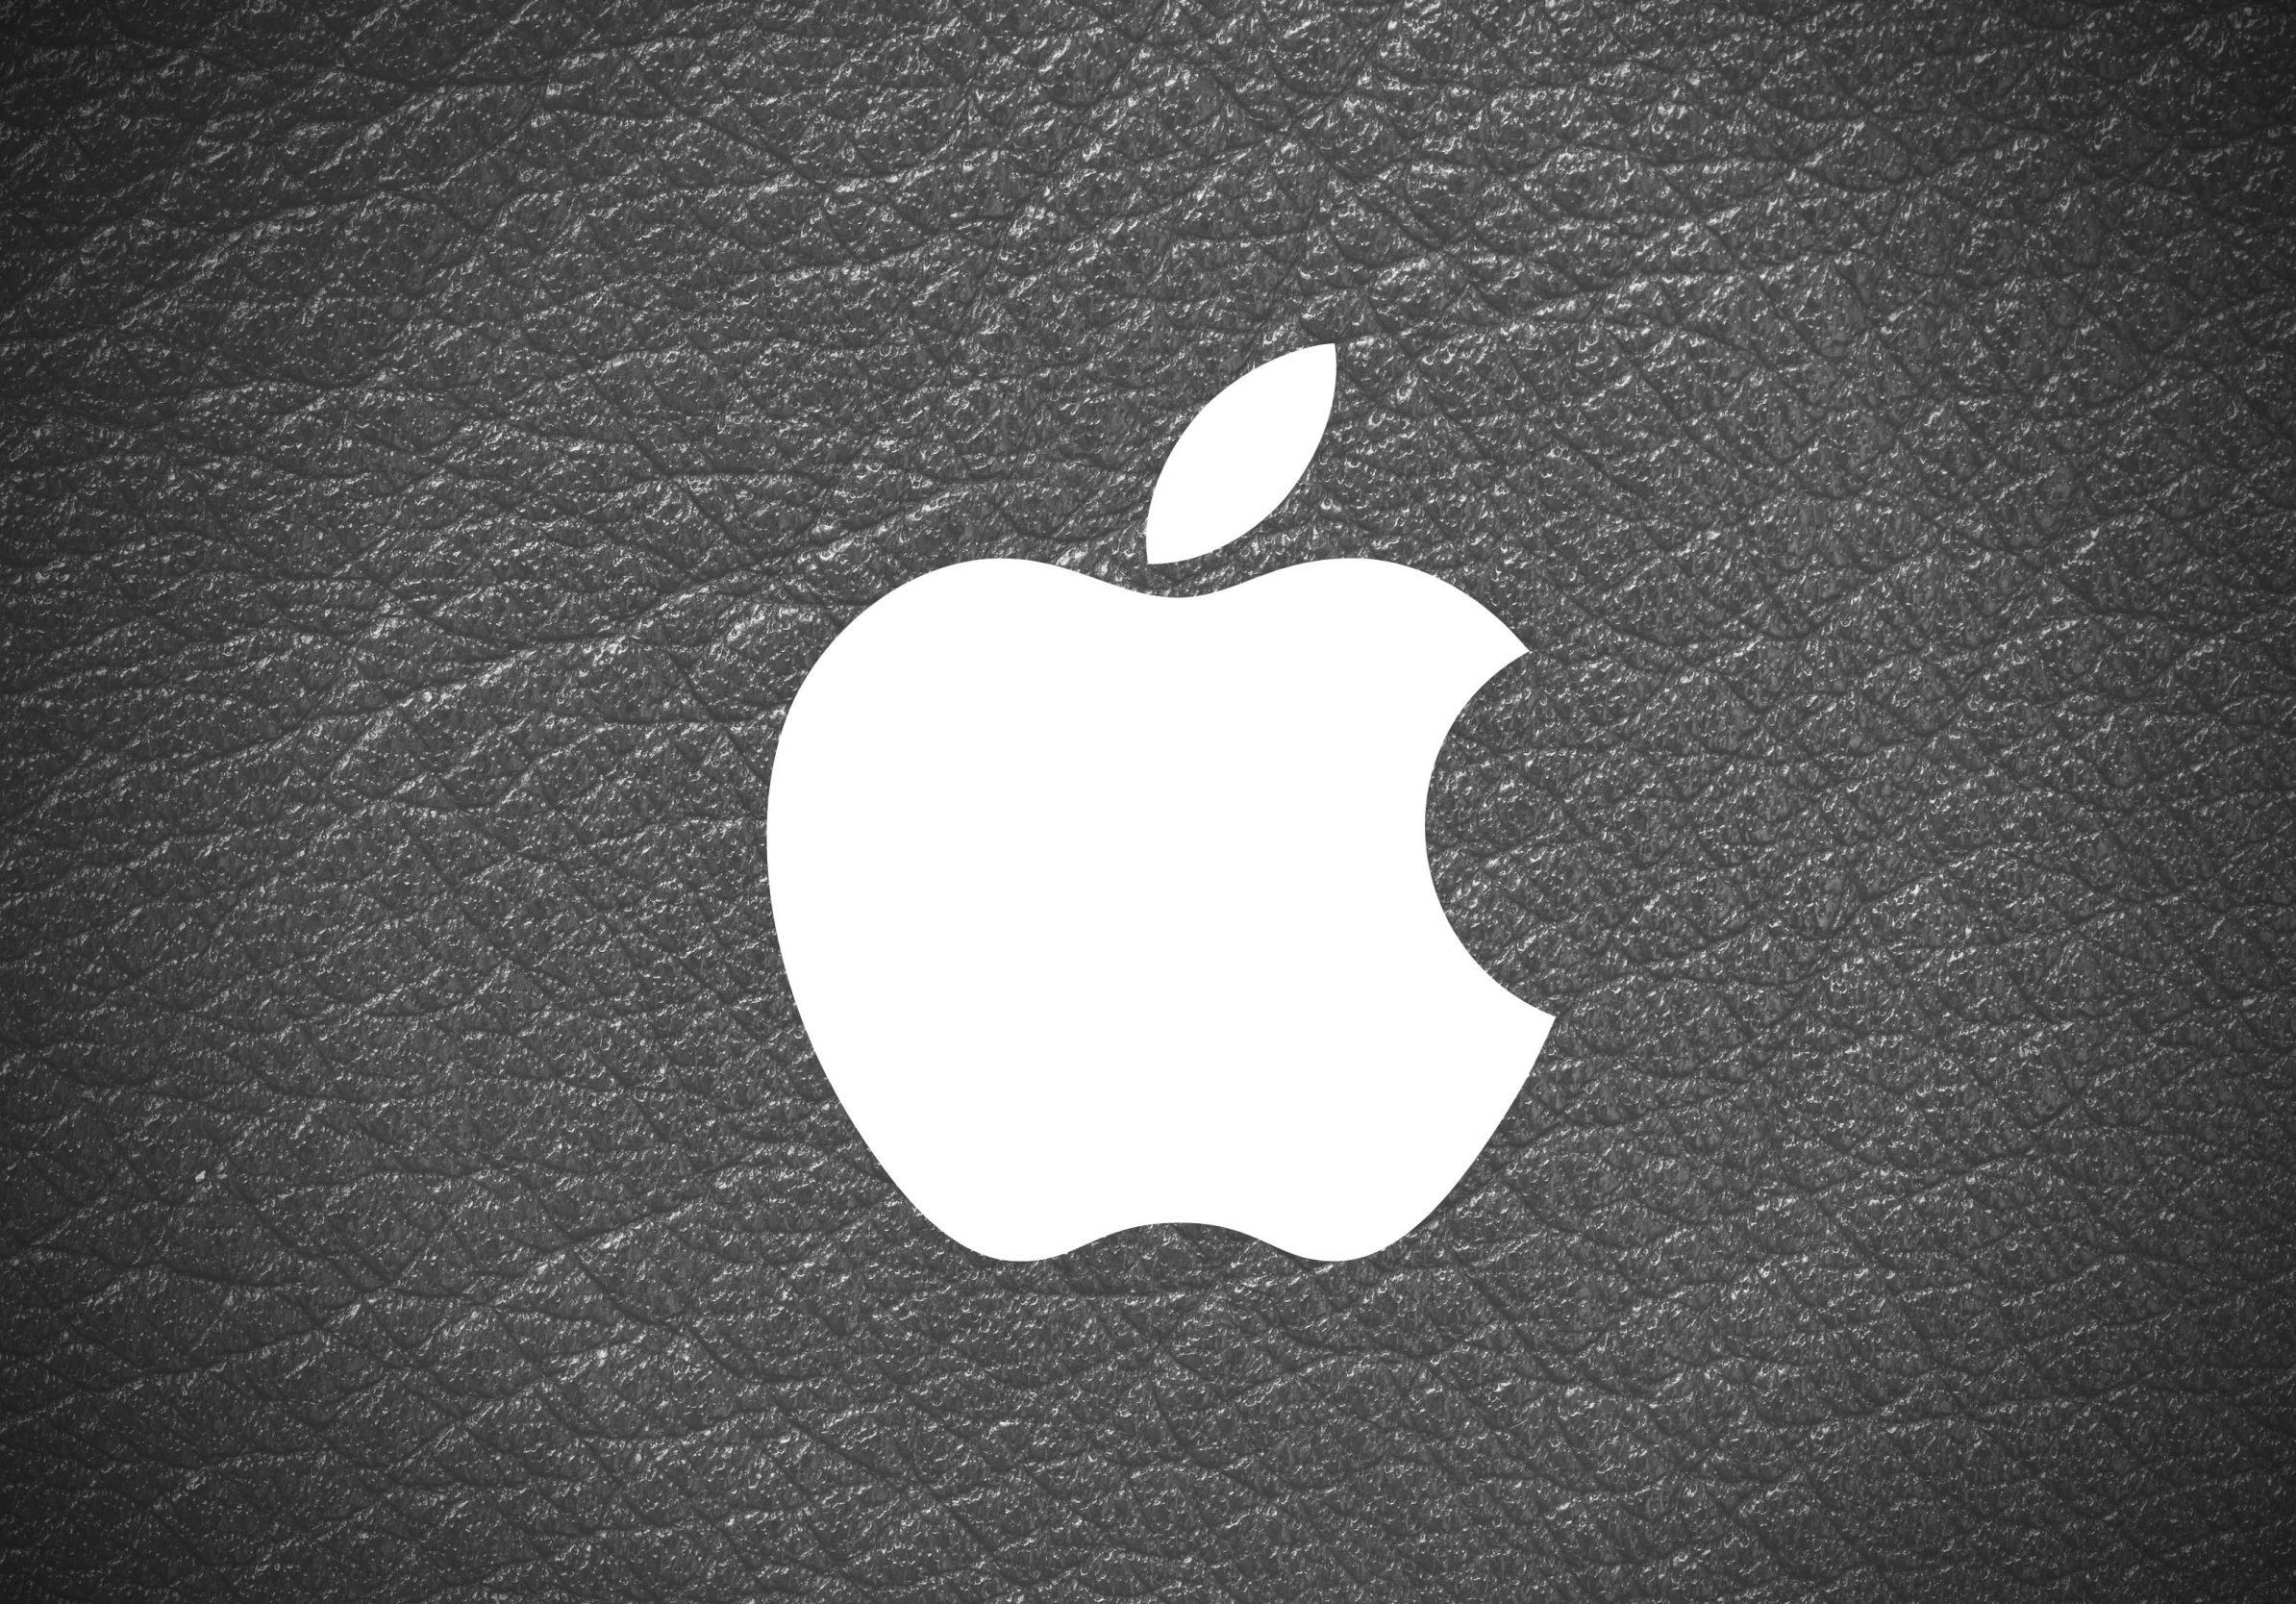 2388x1668 iPad Pro wallpapers Apple Logo Leather Black and White iPad Wallpaper 2388x1668 pixels resolution